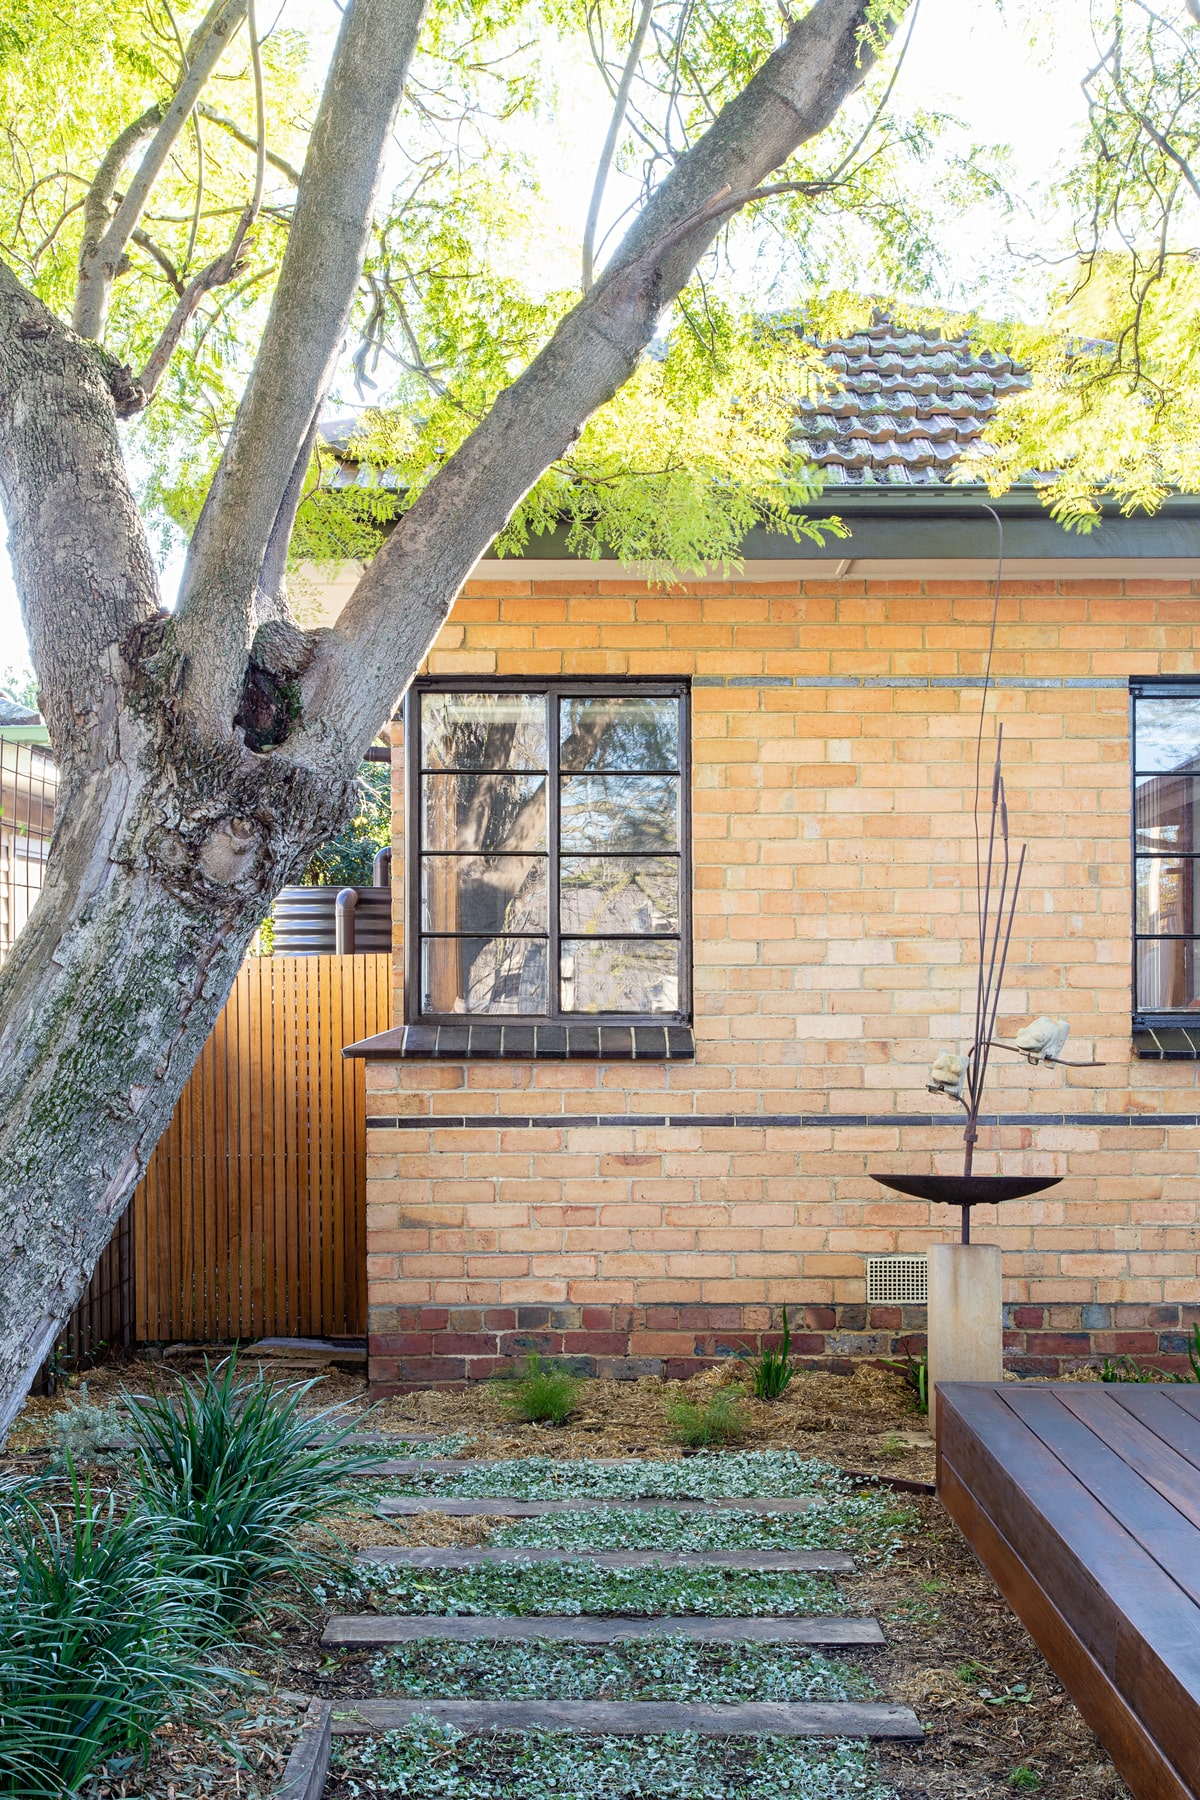 Bungalow Upcycle Project By Brave New Eco Local Residential Architecture And Interior Design Pascoe Vale, South Vic Image 35